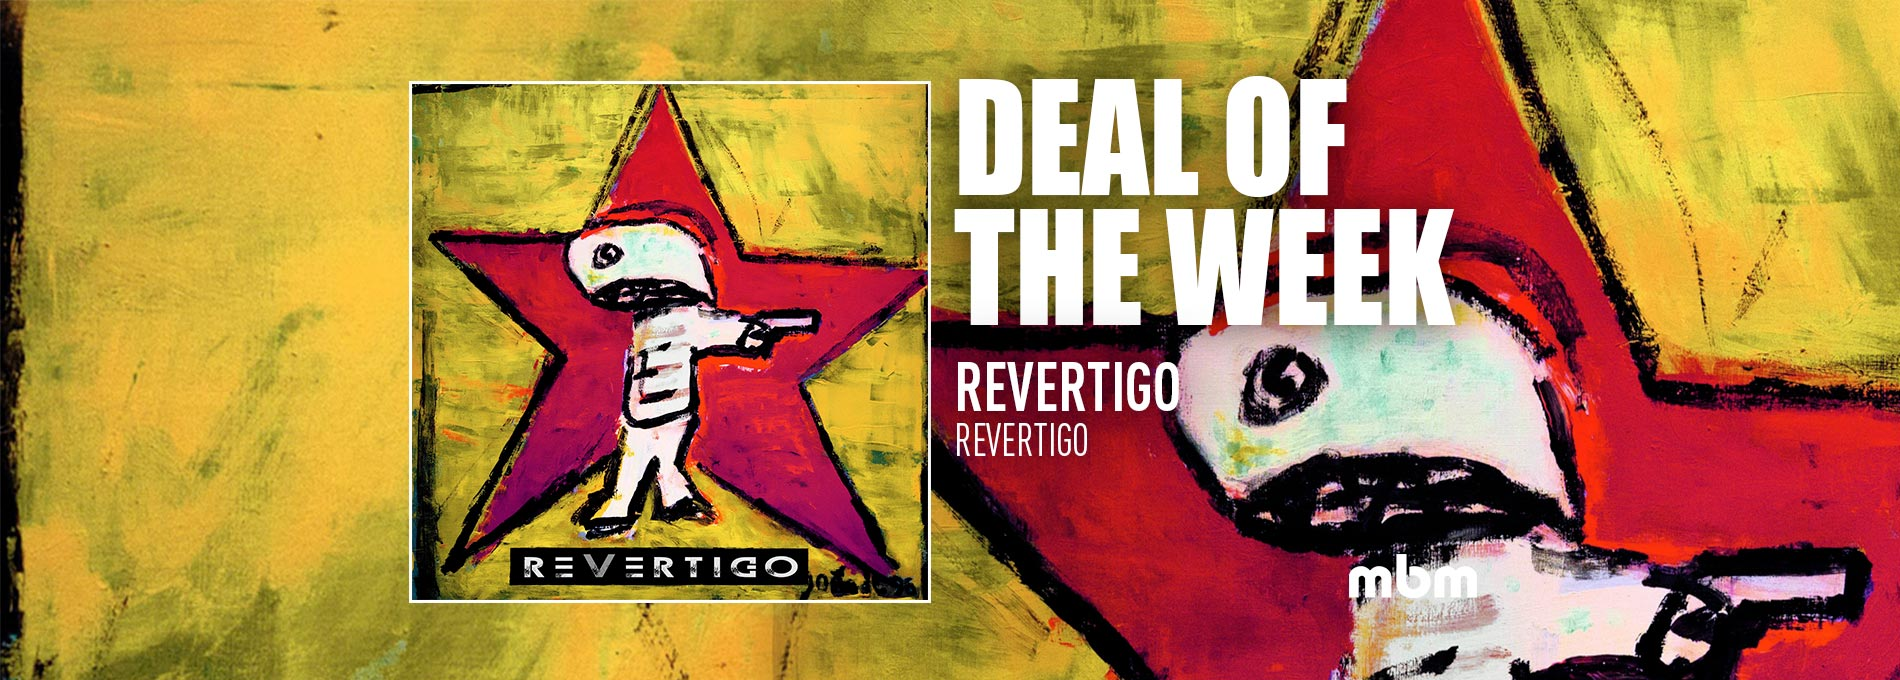 Deal Of The Week: REVERTIGO - Revertigo